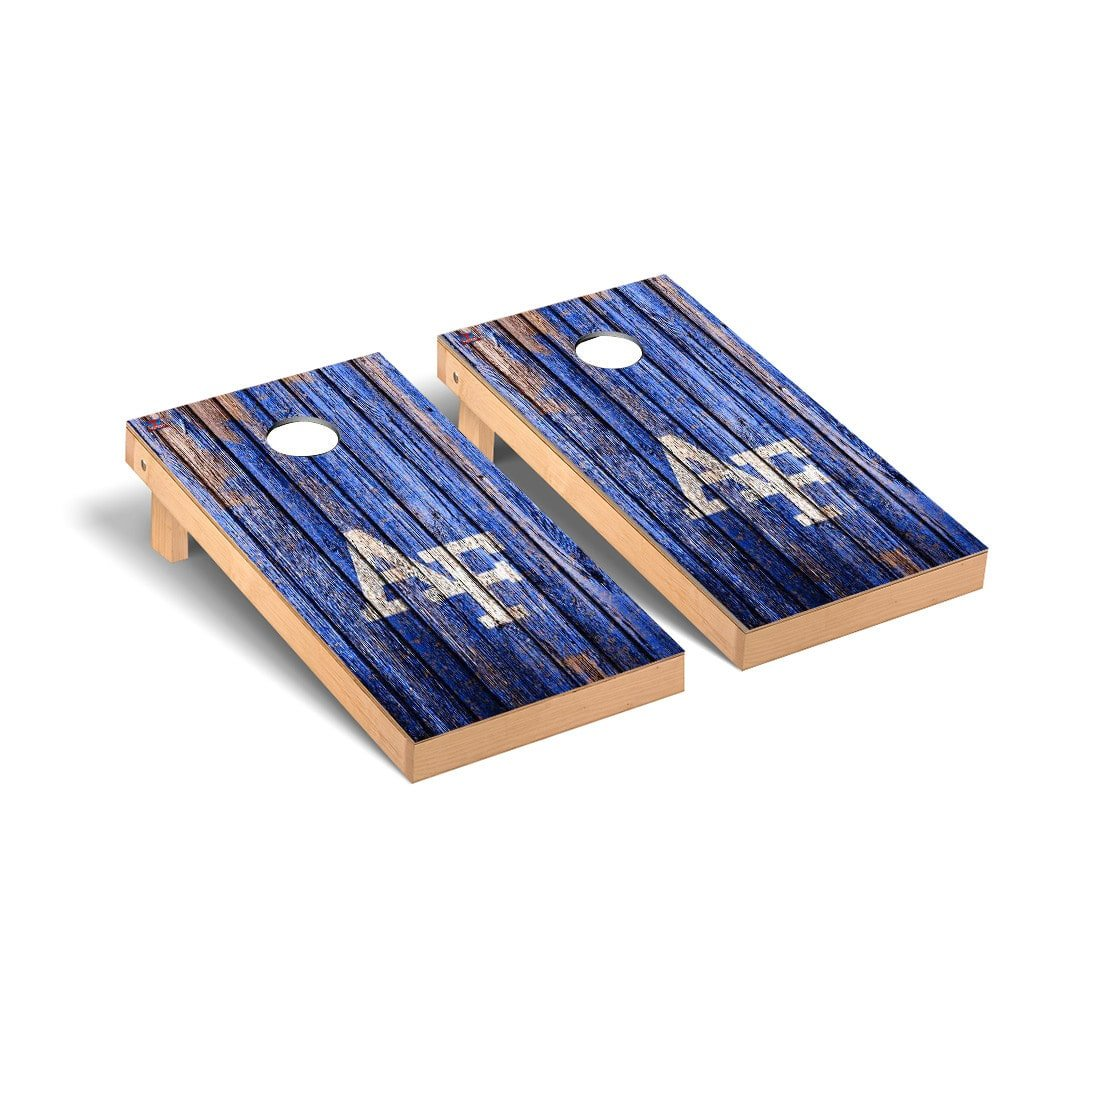 大洲市 Air Force Academy Falcons Cornhole Game Cornhole Set Set Falcons Weatheredバージョン B011A32T90, アンティナギフトスタジオ:198dc16a --- arianechie.dominiotemporario.com